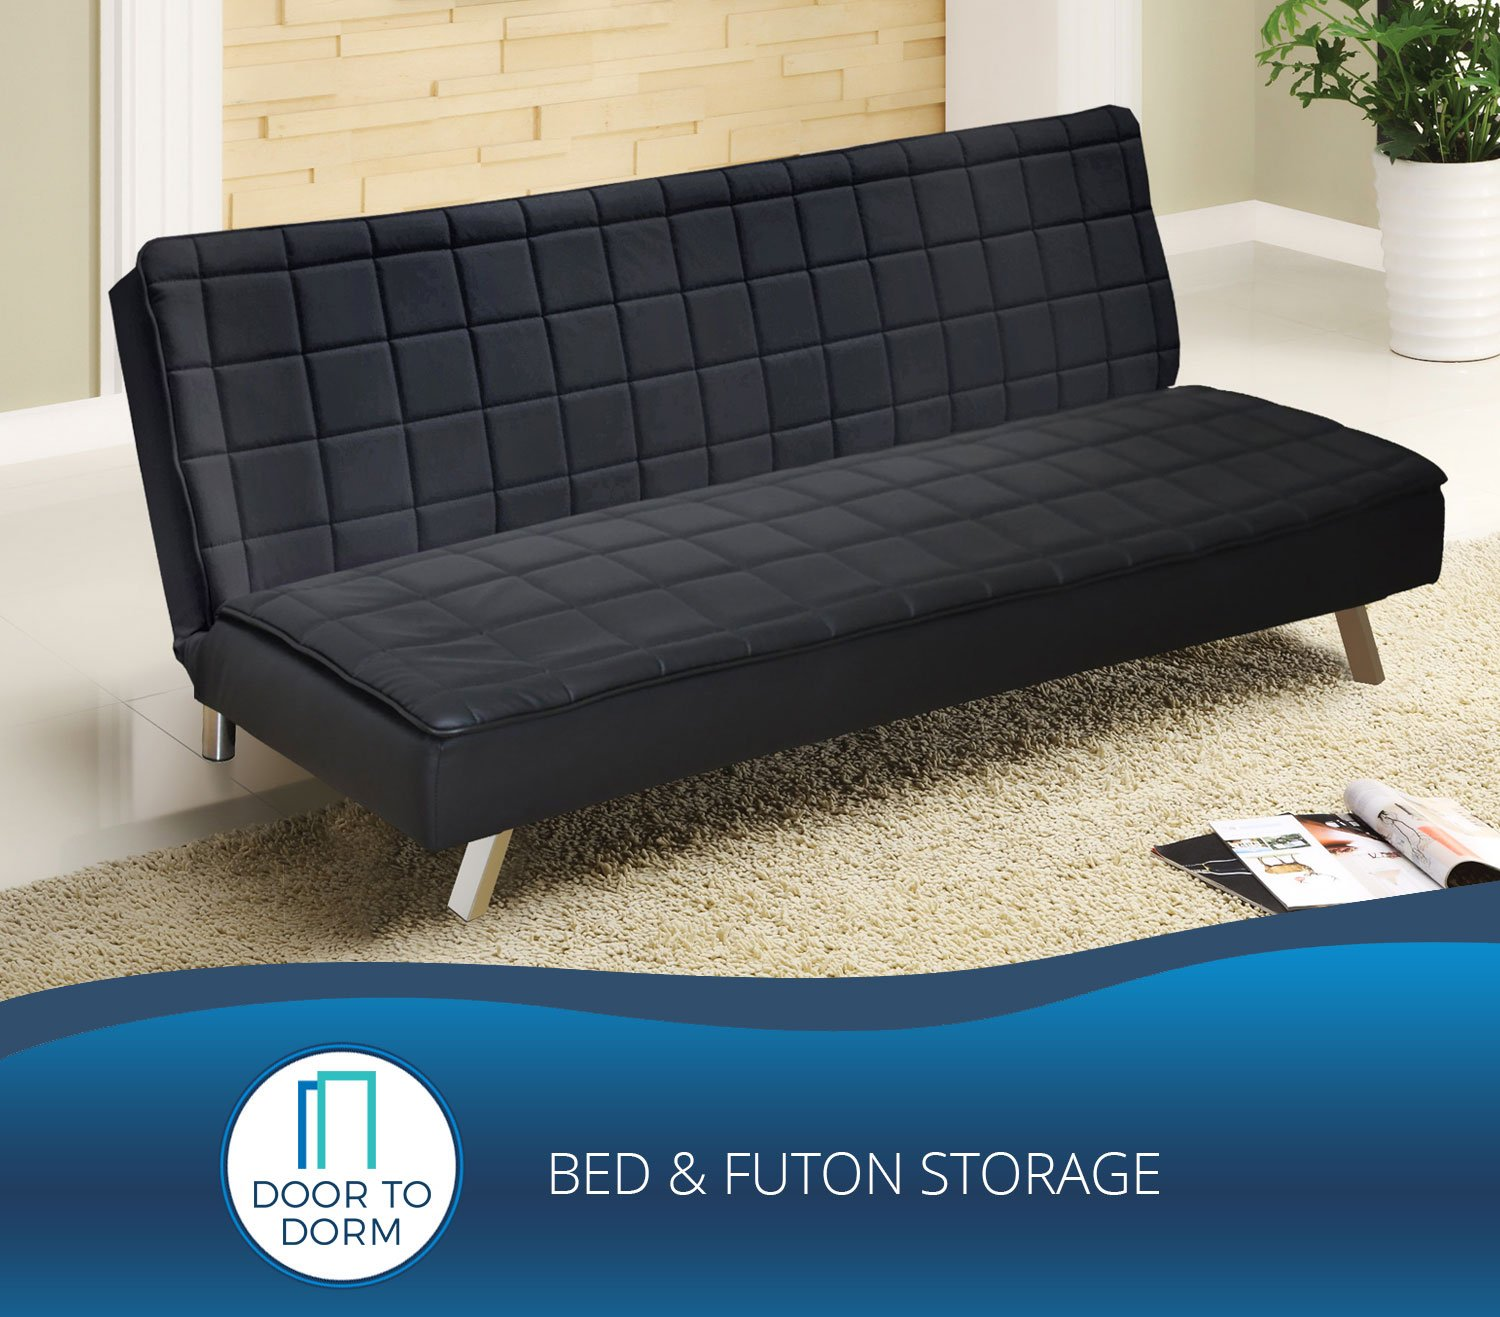 room bed storage cart to futon door dorm and futons product